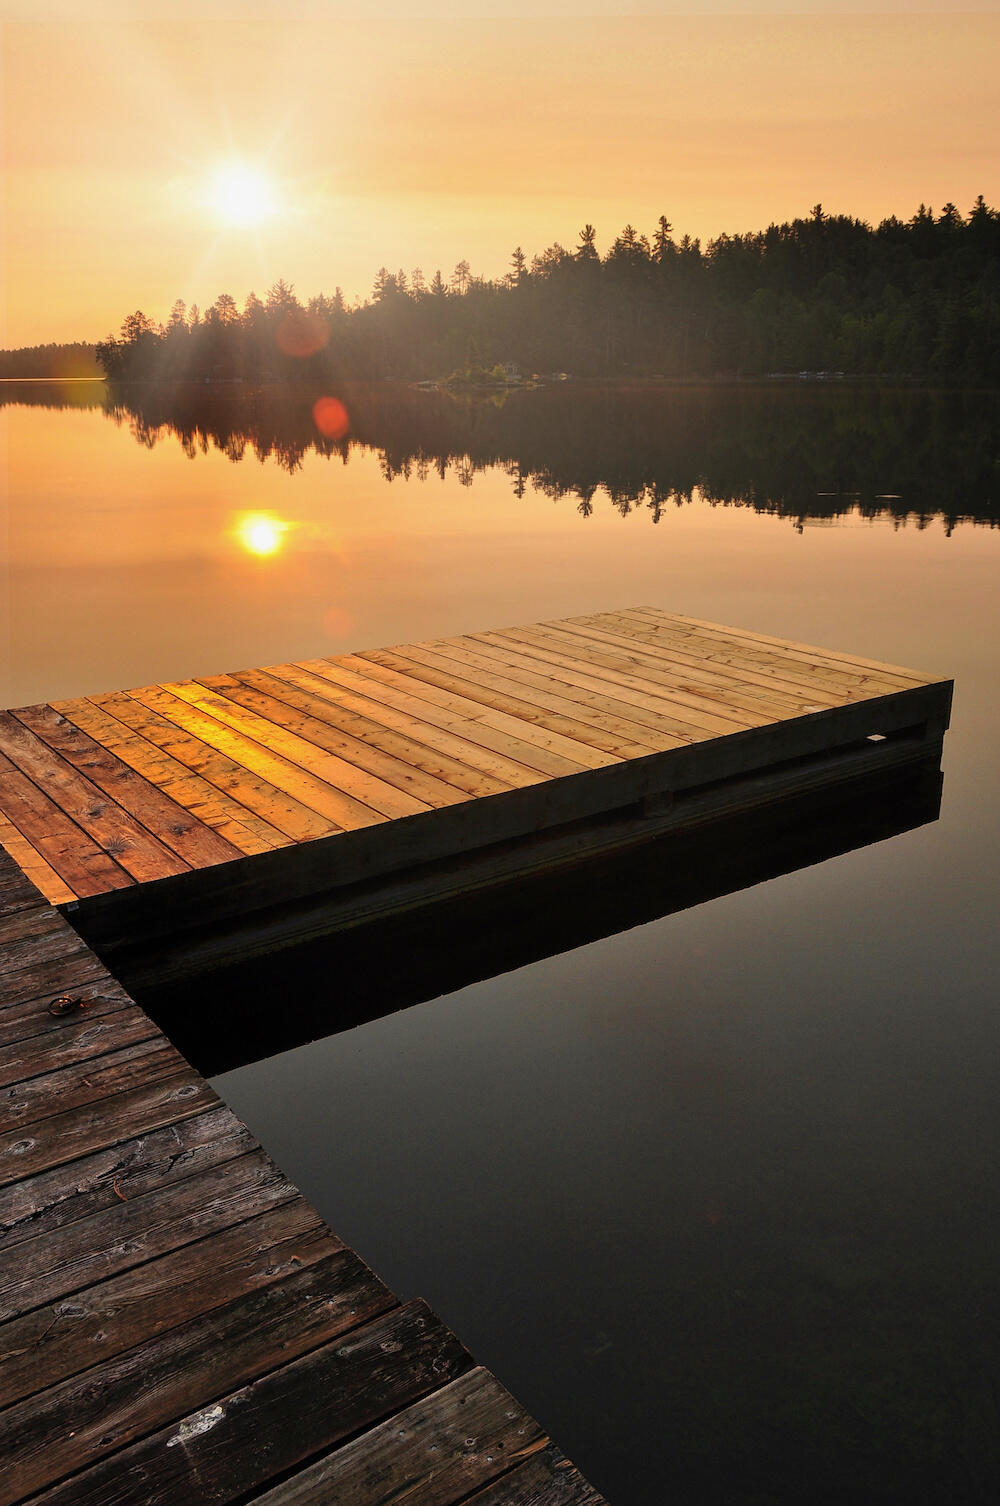 Dock on a lake with trees at sunrise